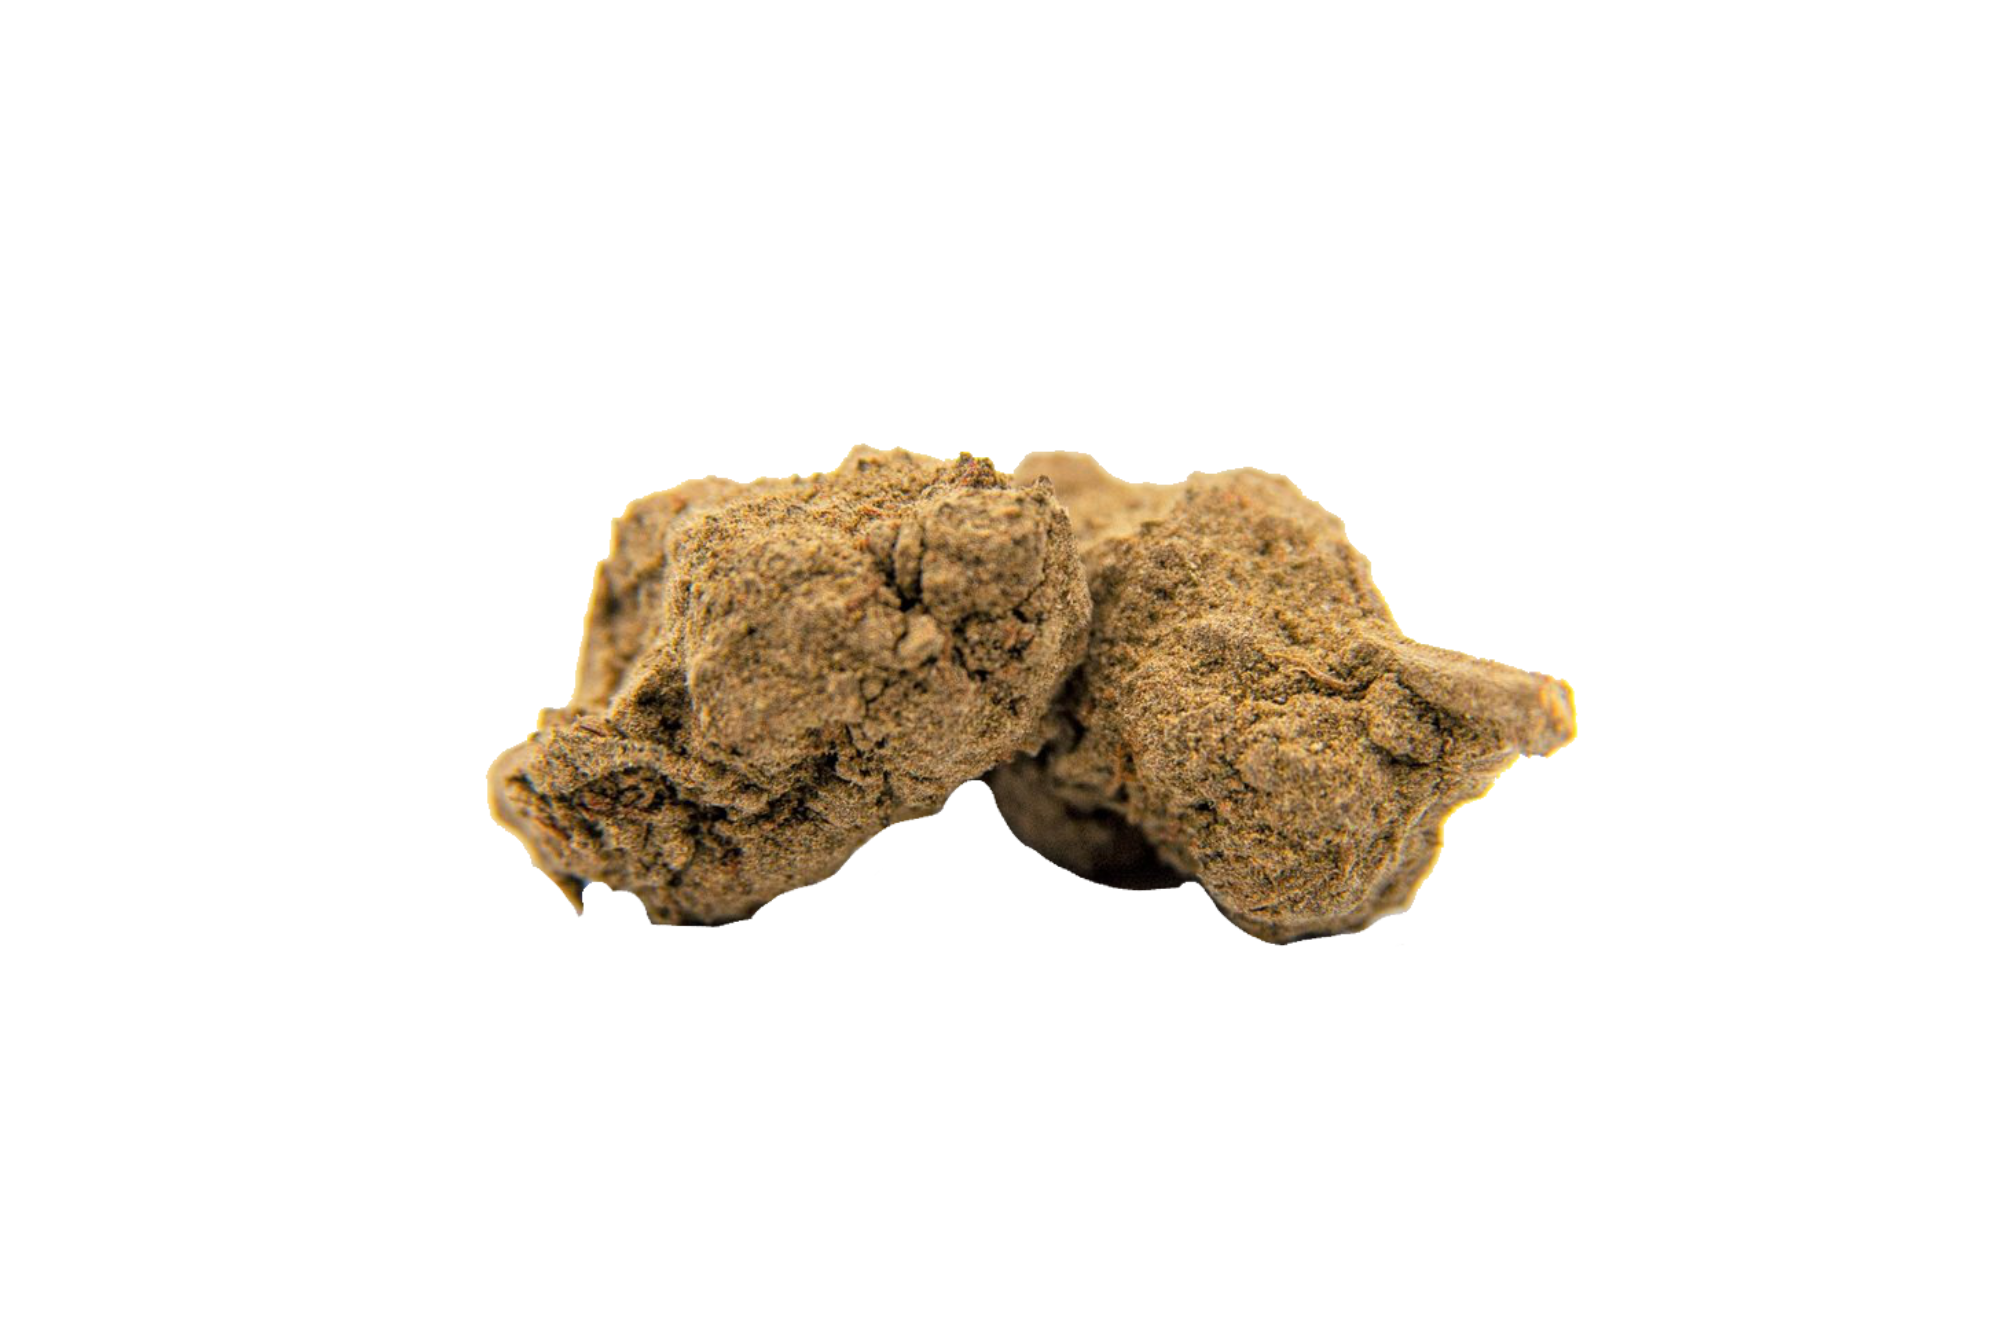 Moonrocks - 37,58% CBD + 7,3% CBG